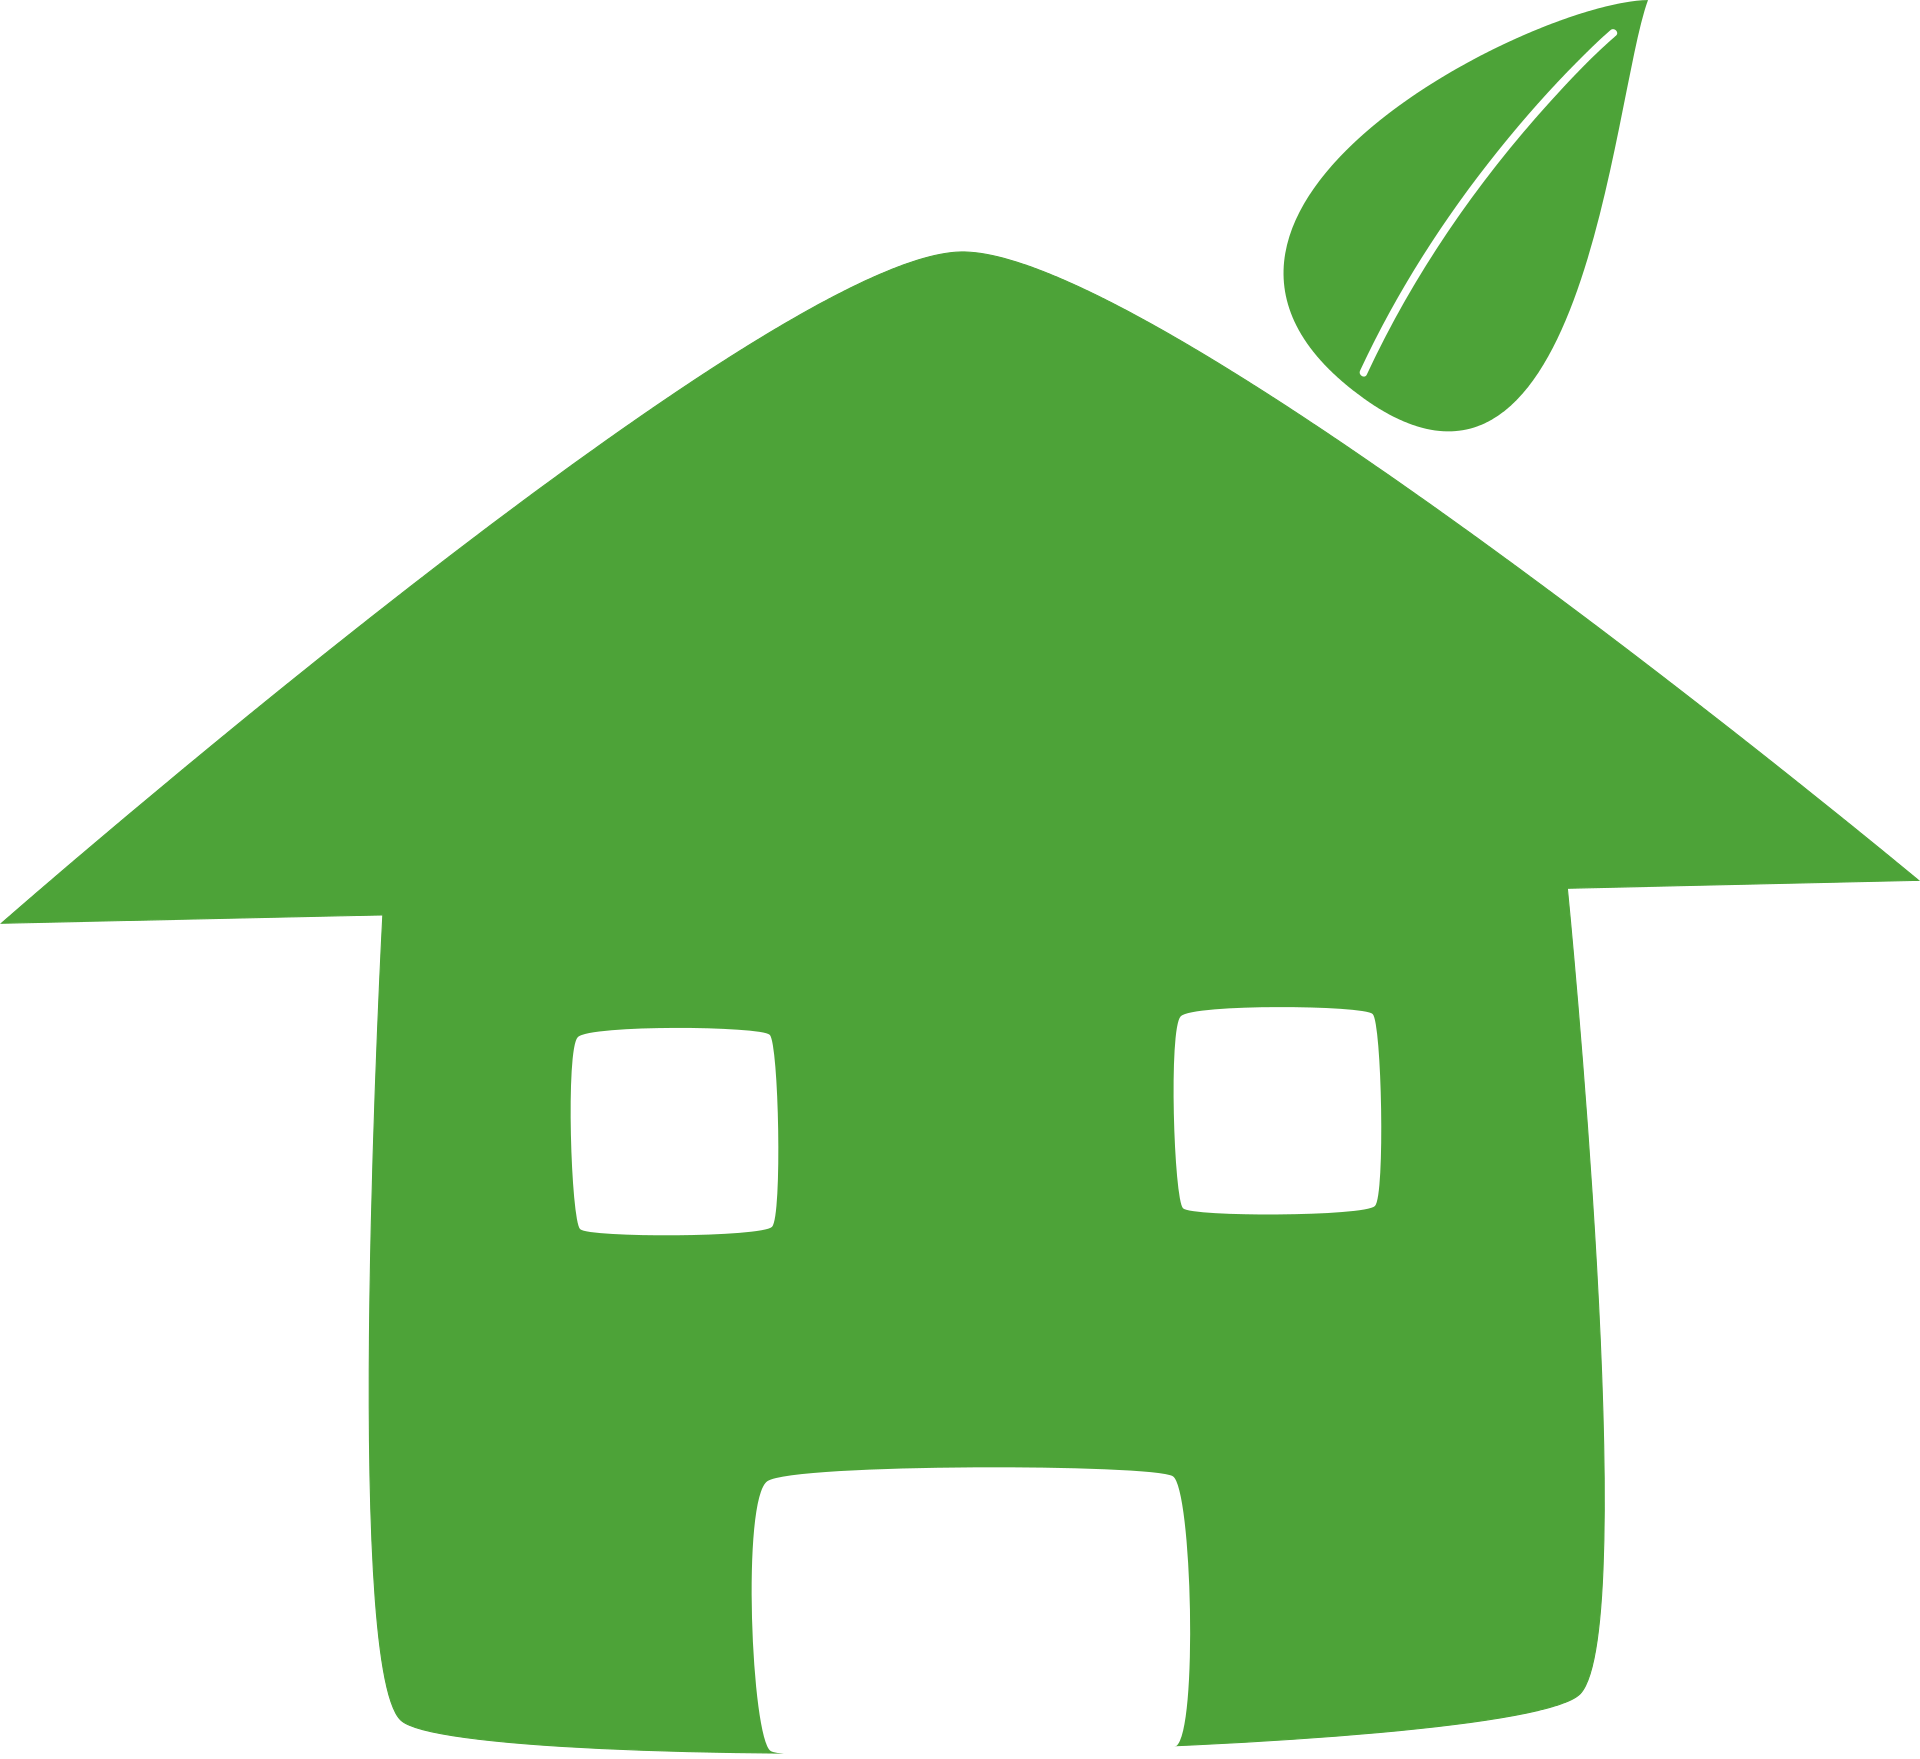 Environment clipart sustainable house. Residential design maximizing the